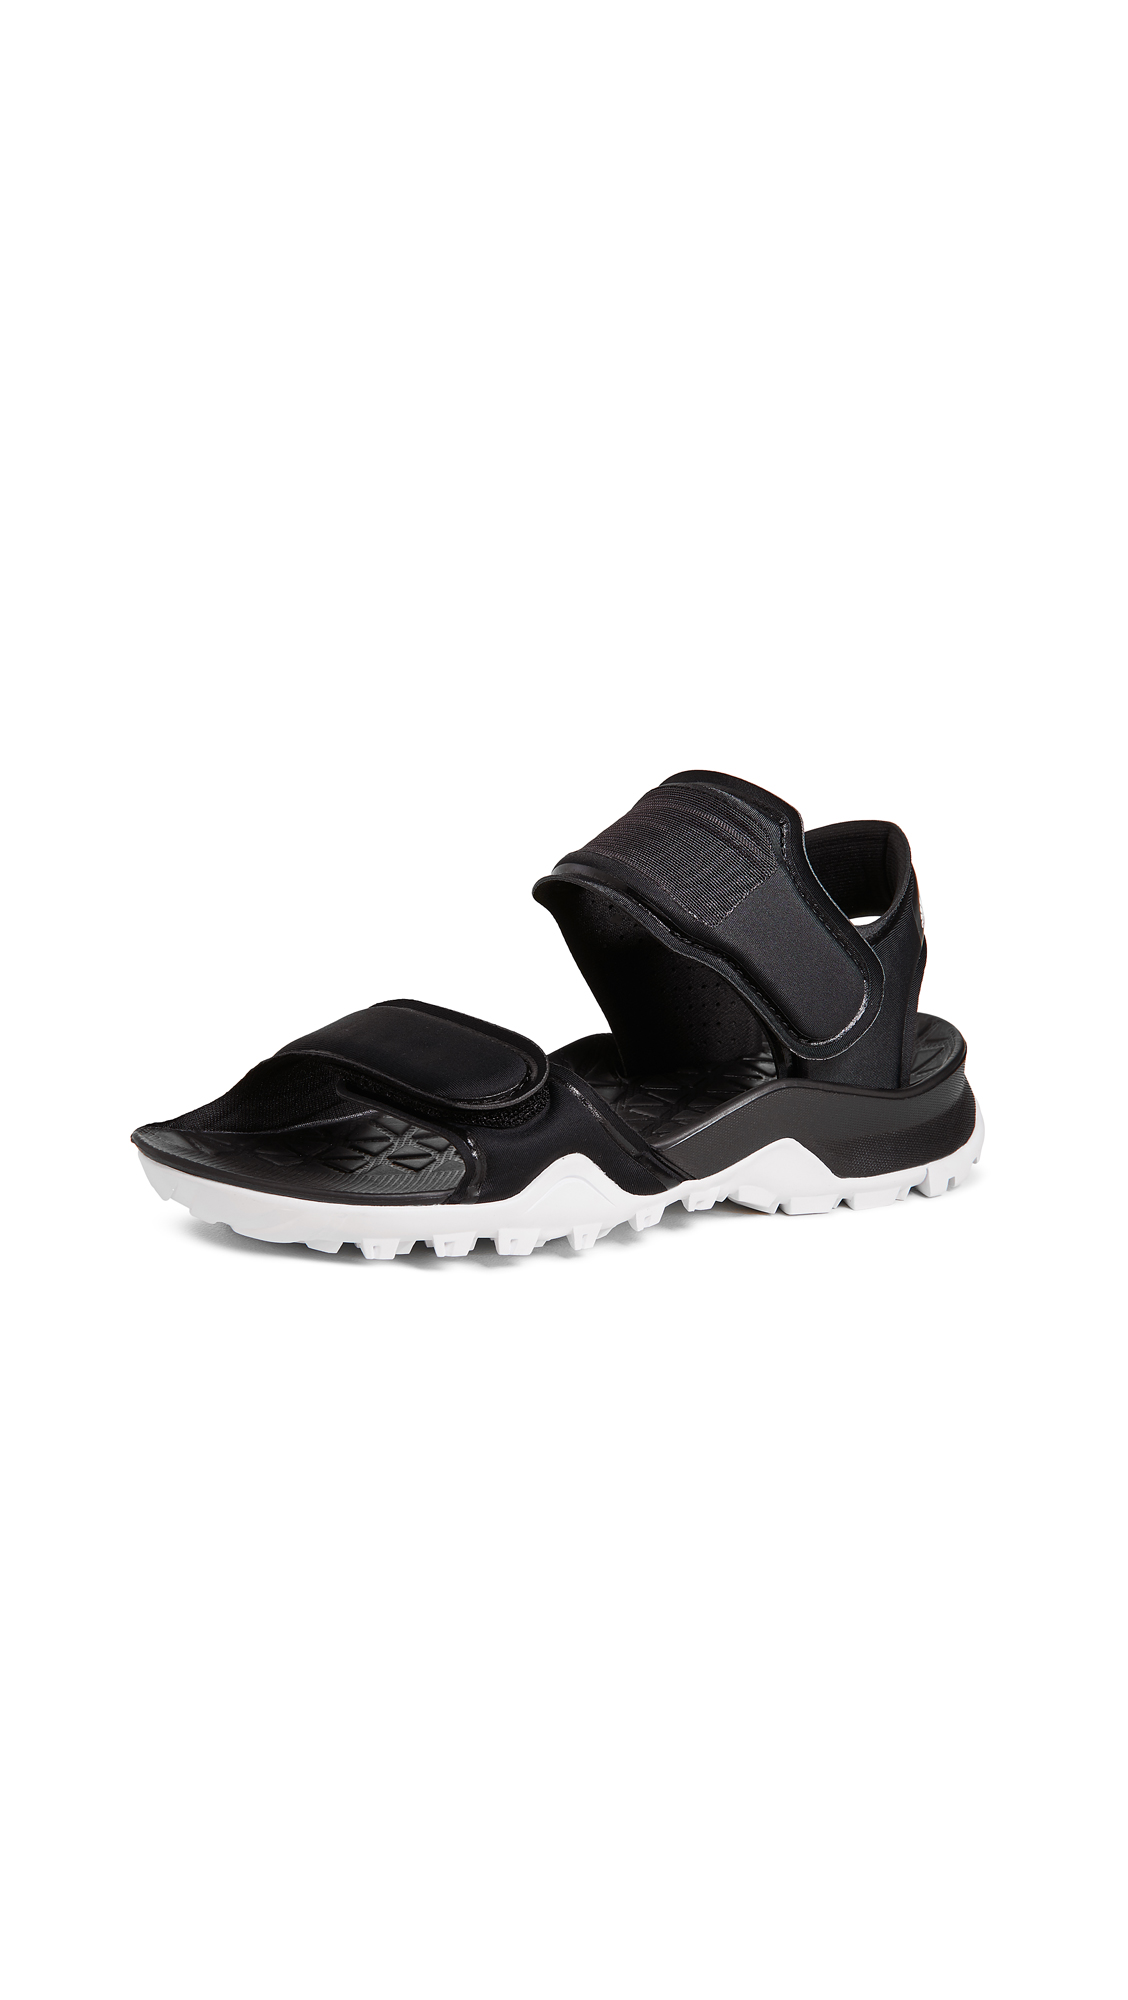 adidas by Stella McCartney Hikara Sandals - Black/Black